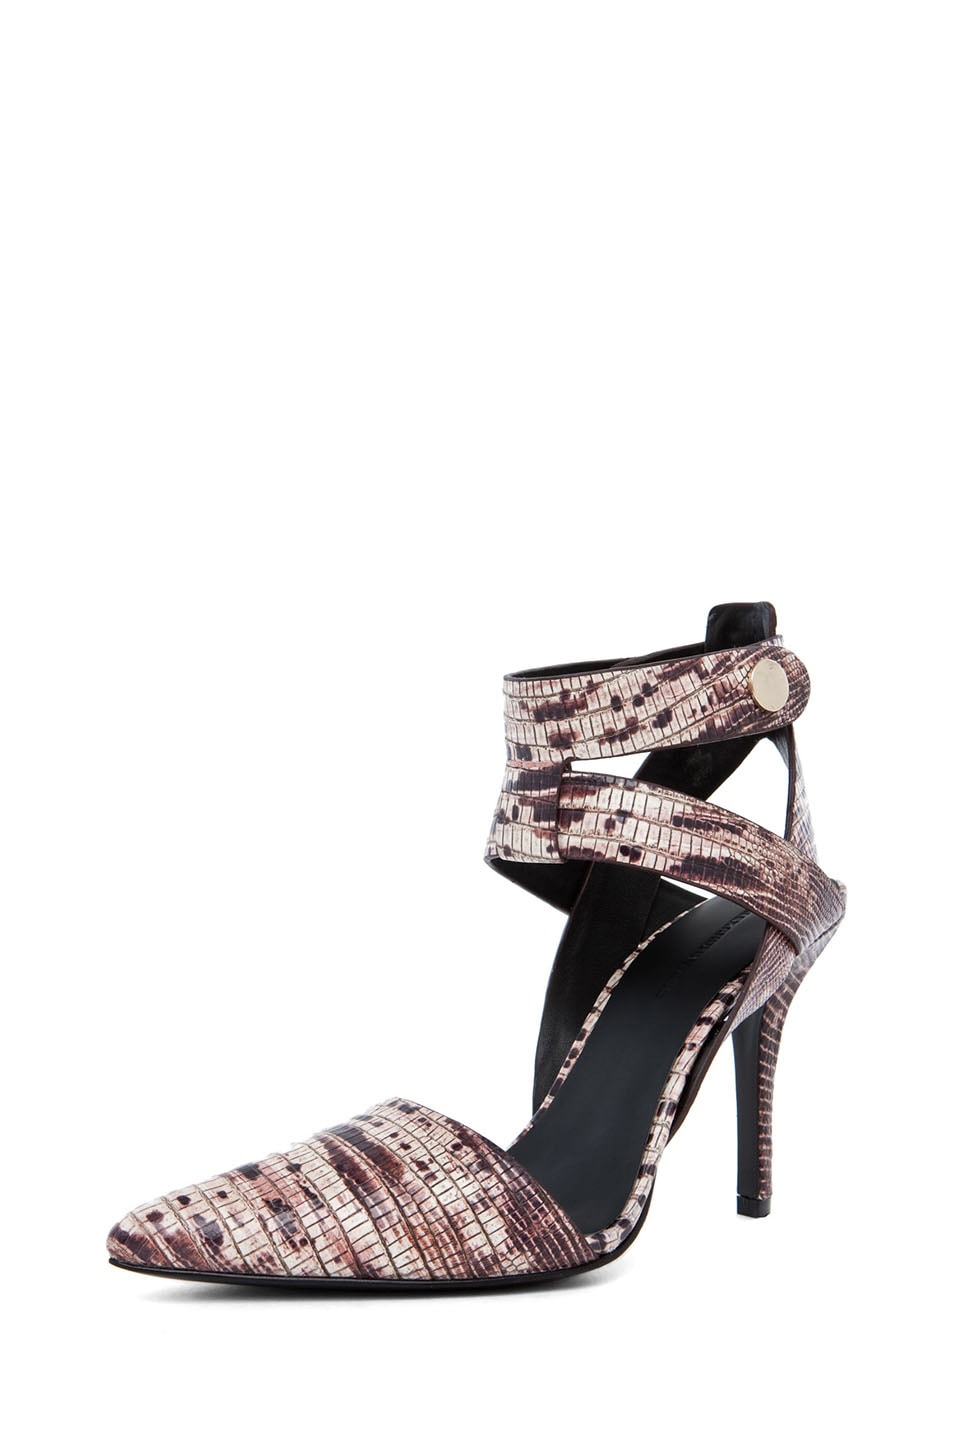 Image 2 of Alexander Wang Sonja Printed Ankle Strap Pump in Ox Blood